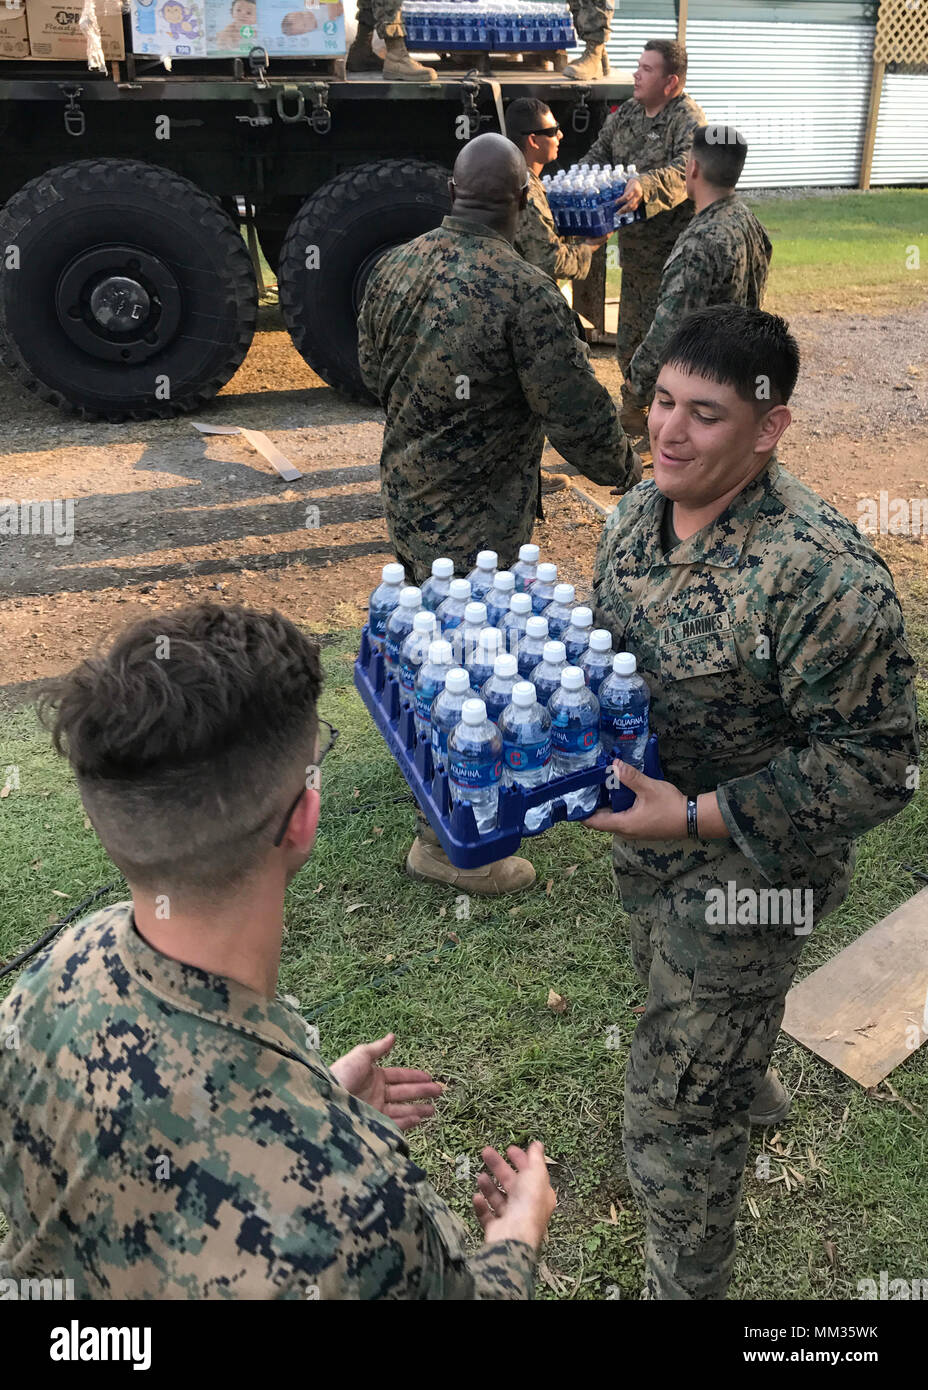 BEAUMONT, Texas - U.S. Marines from 14th Marine Regiment, 4th Marine Division, Marine Forces Reserve, Marine Wing Support Squadron 473, 4th Marine Aircraft Wing, MARFORRES, unload pallets of water from an MTVR 7-ton truck at Rosehill Acres, Texas, Sept. 3, 2017.  14th Marines, based out of Ft. Worth, Texas, is participating in relief efforts for those effected by Hurricane Harvey. (U.S. Marine Corps photo by Master Sgt. Ricardo Morales/Released) - Stock Image